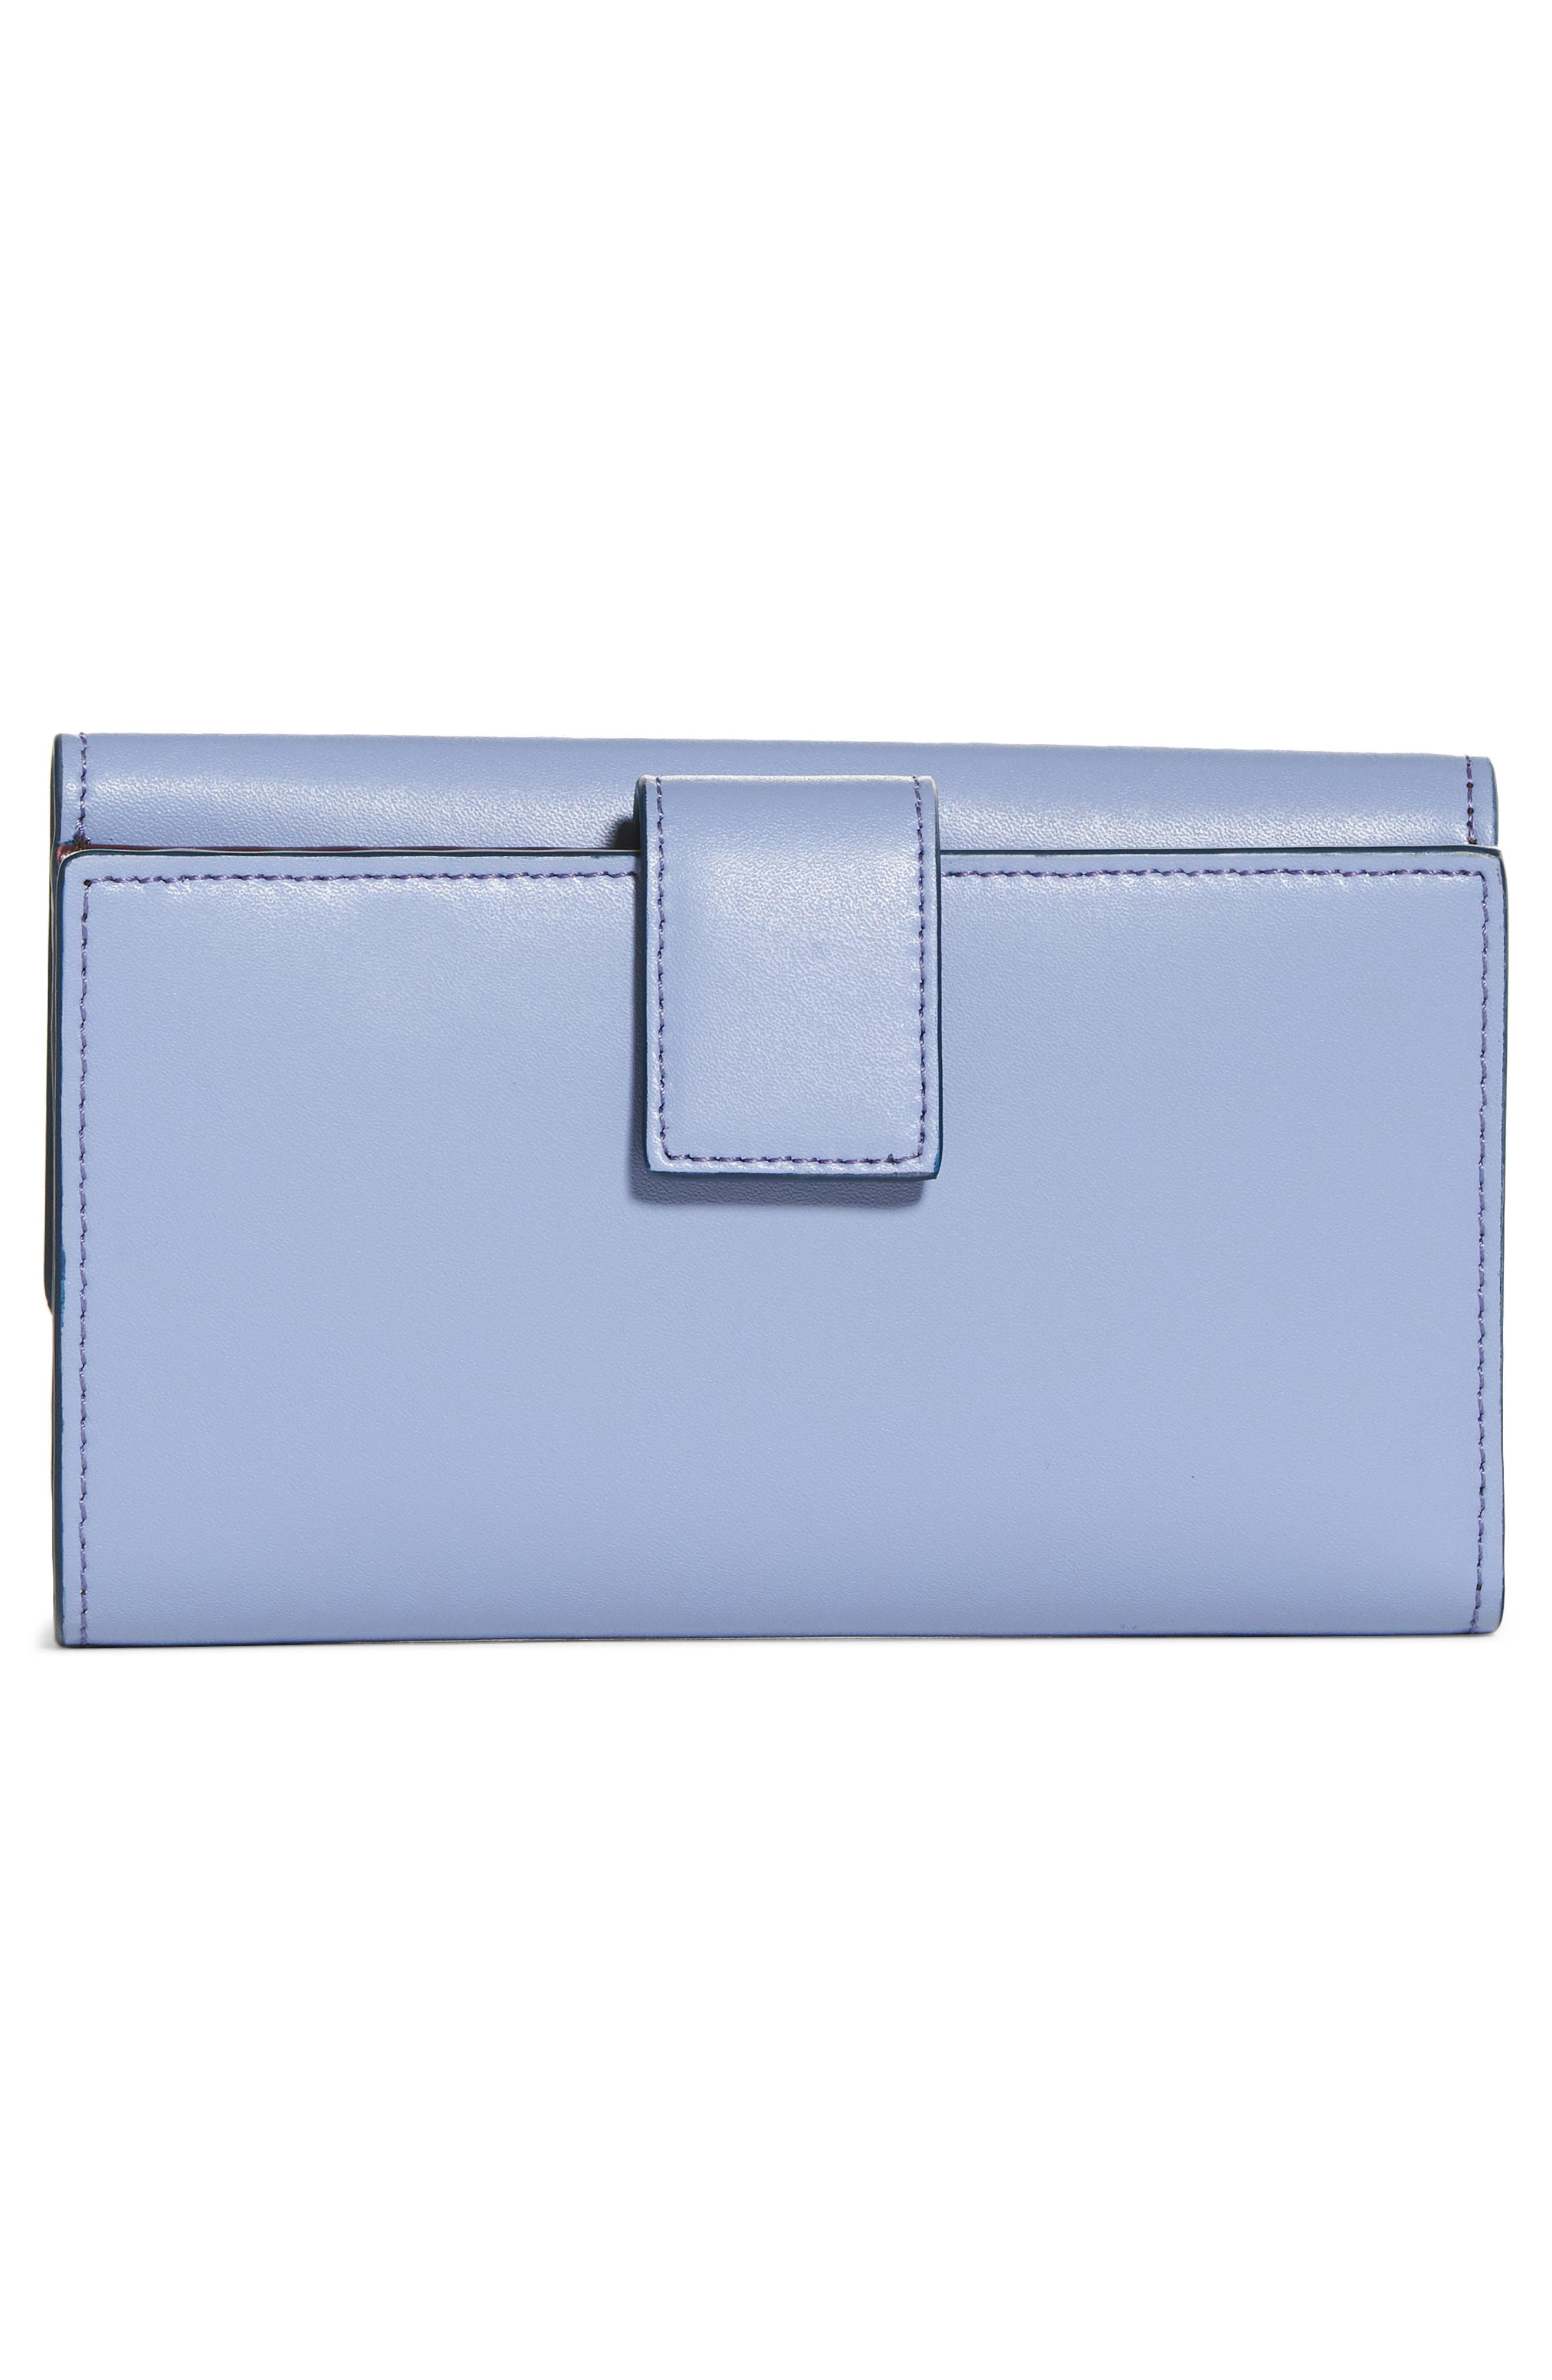 Medium Leather Wallet,                             Alternate thumbnail 3, color,                             Sky